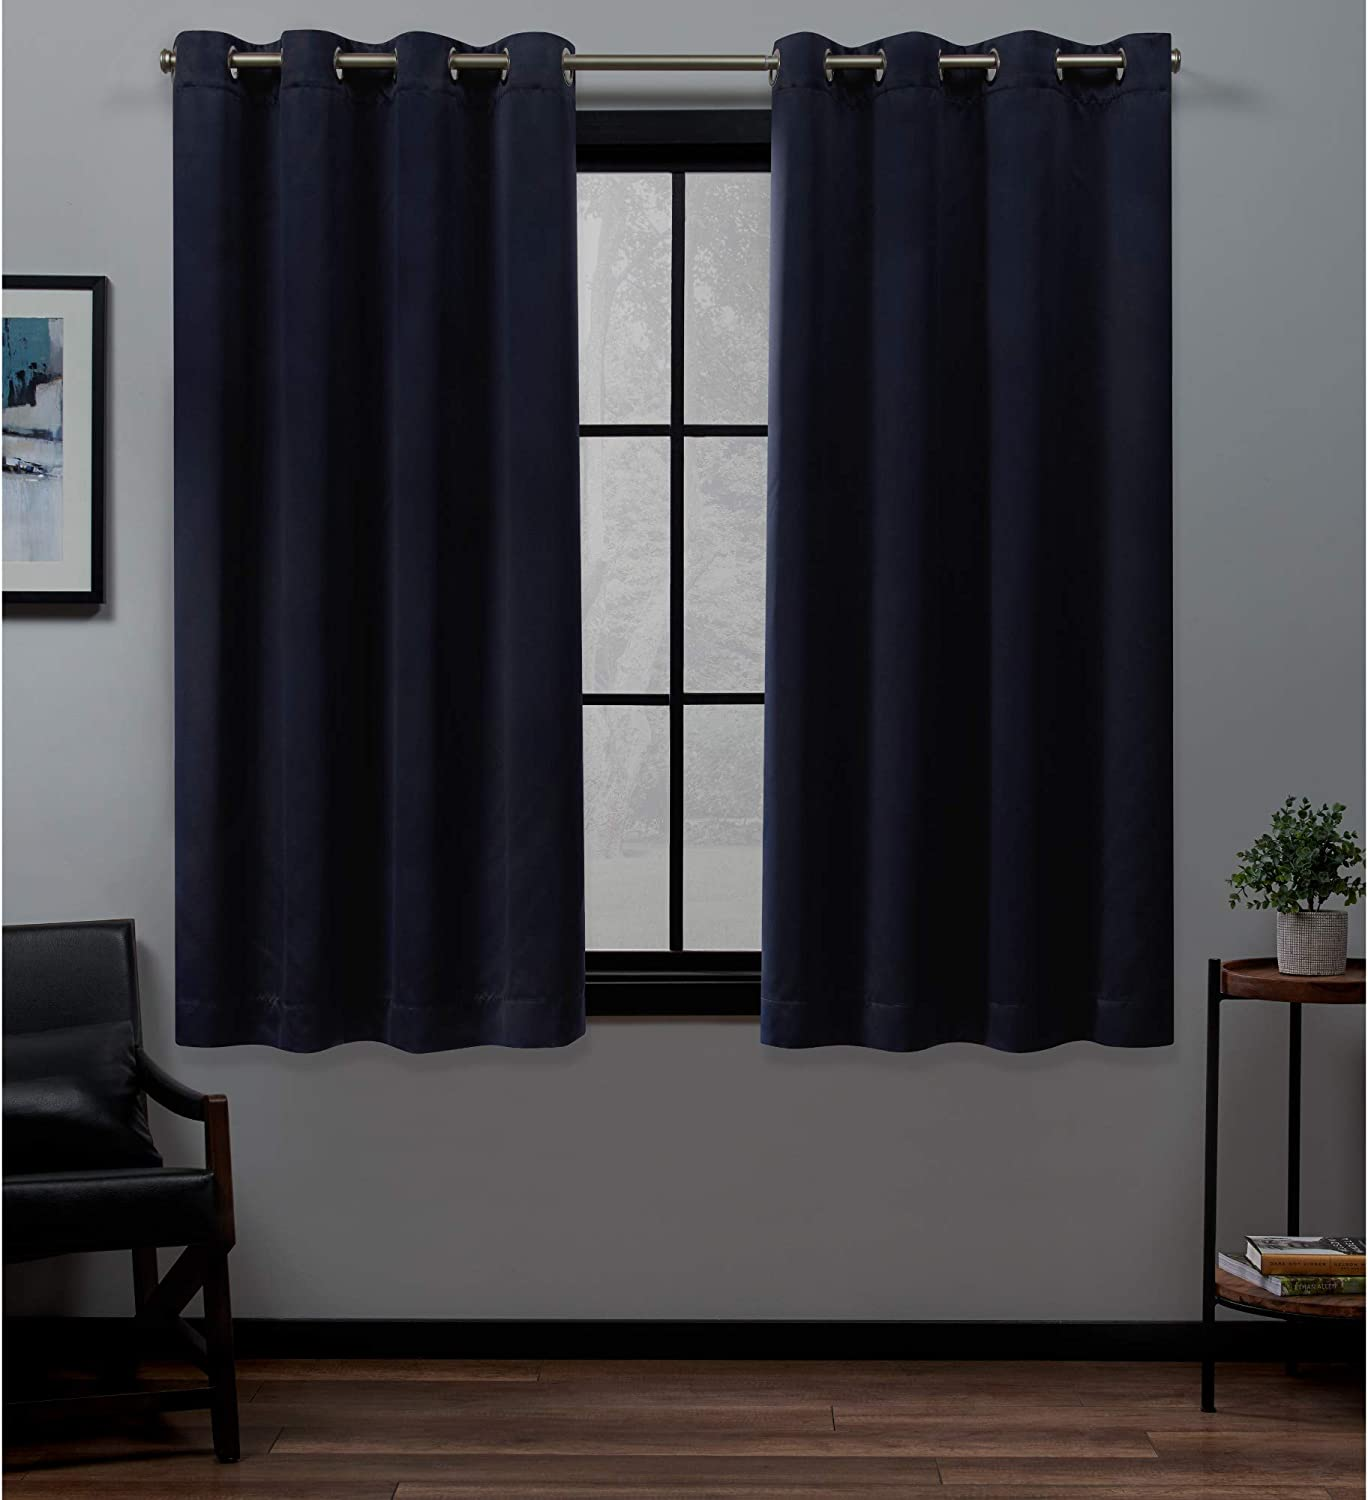 Exclusive Home Academy Total Blackout Grommet Top Curtain Panel Pair, Navy, 52x63, 2 Piece